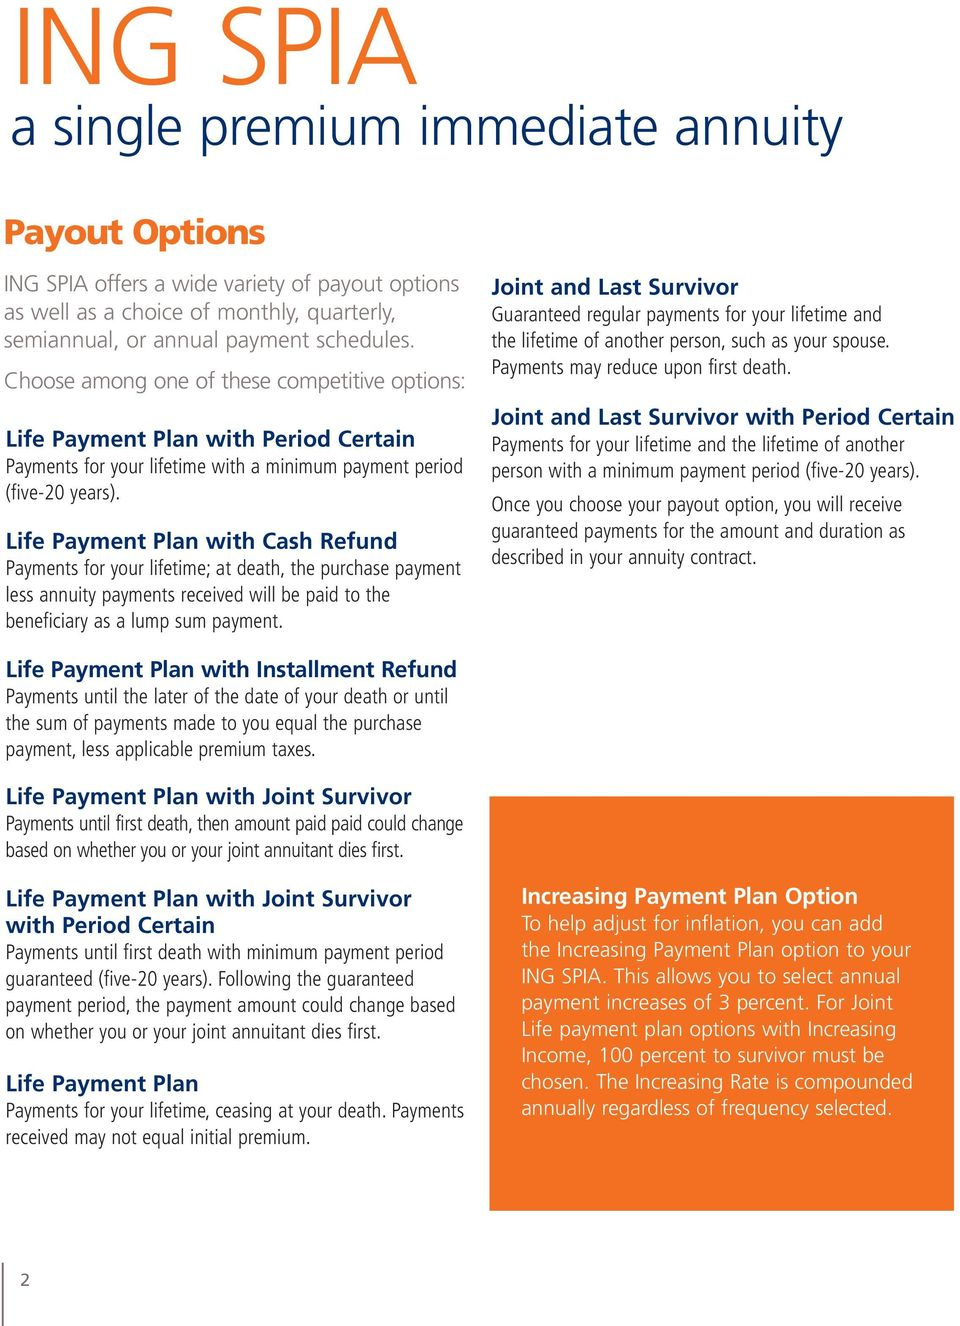 Life Payment Plan with Cash Refund Payments for your lifetime; at death, the purchase payment less annuity payments received will be paid to the beneficiary as a lump sum payment.